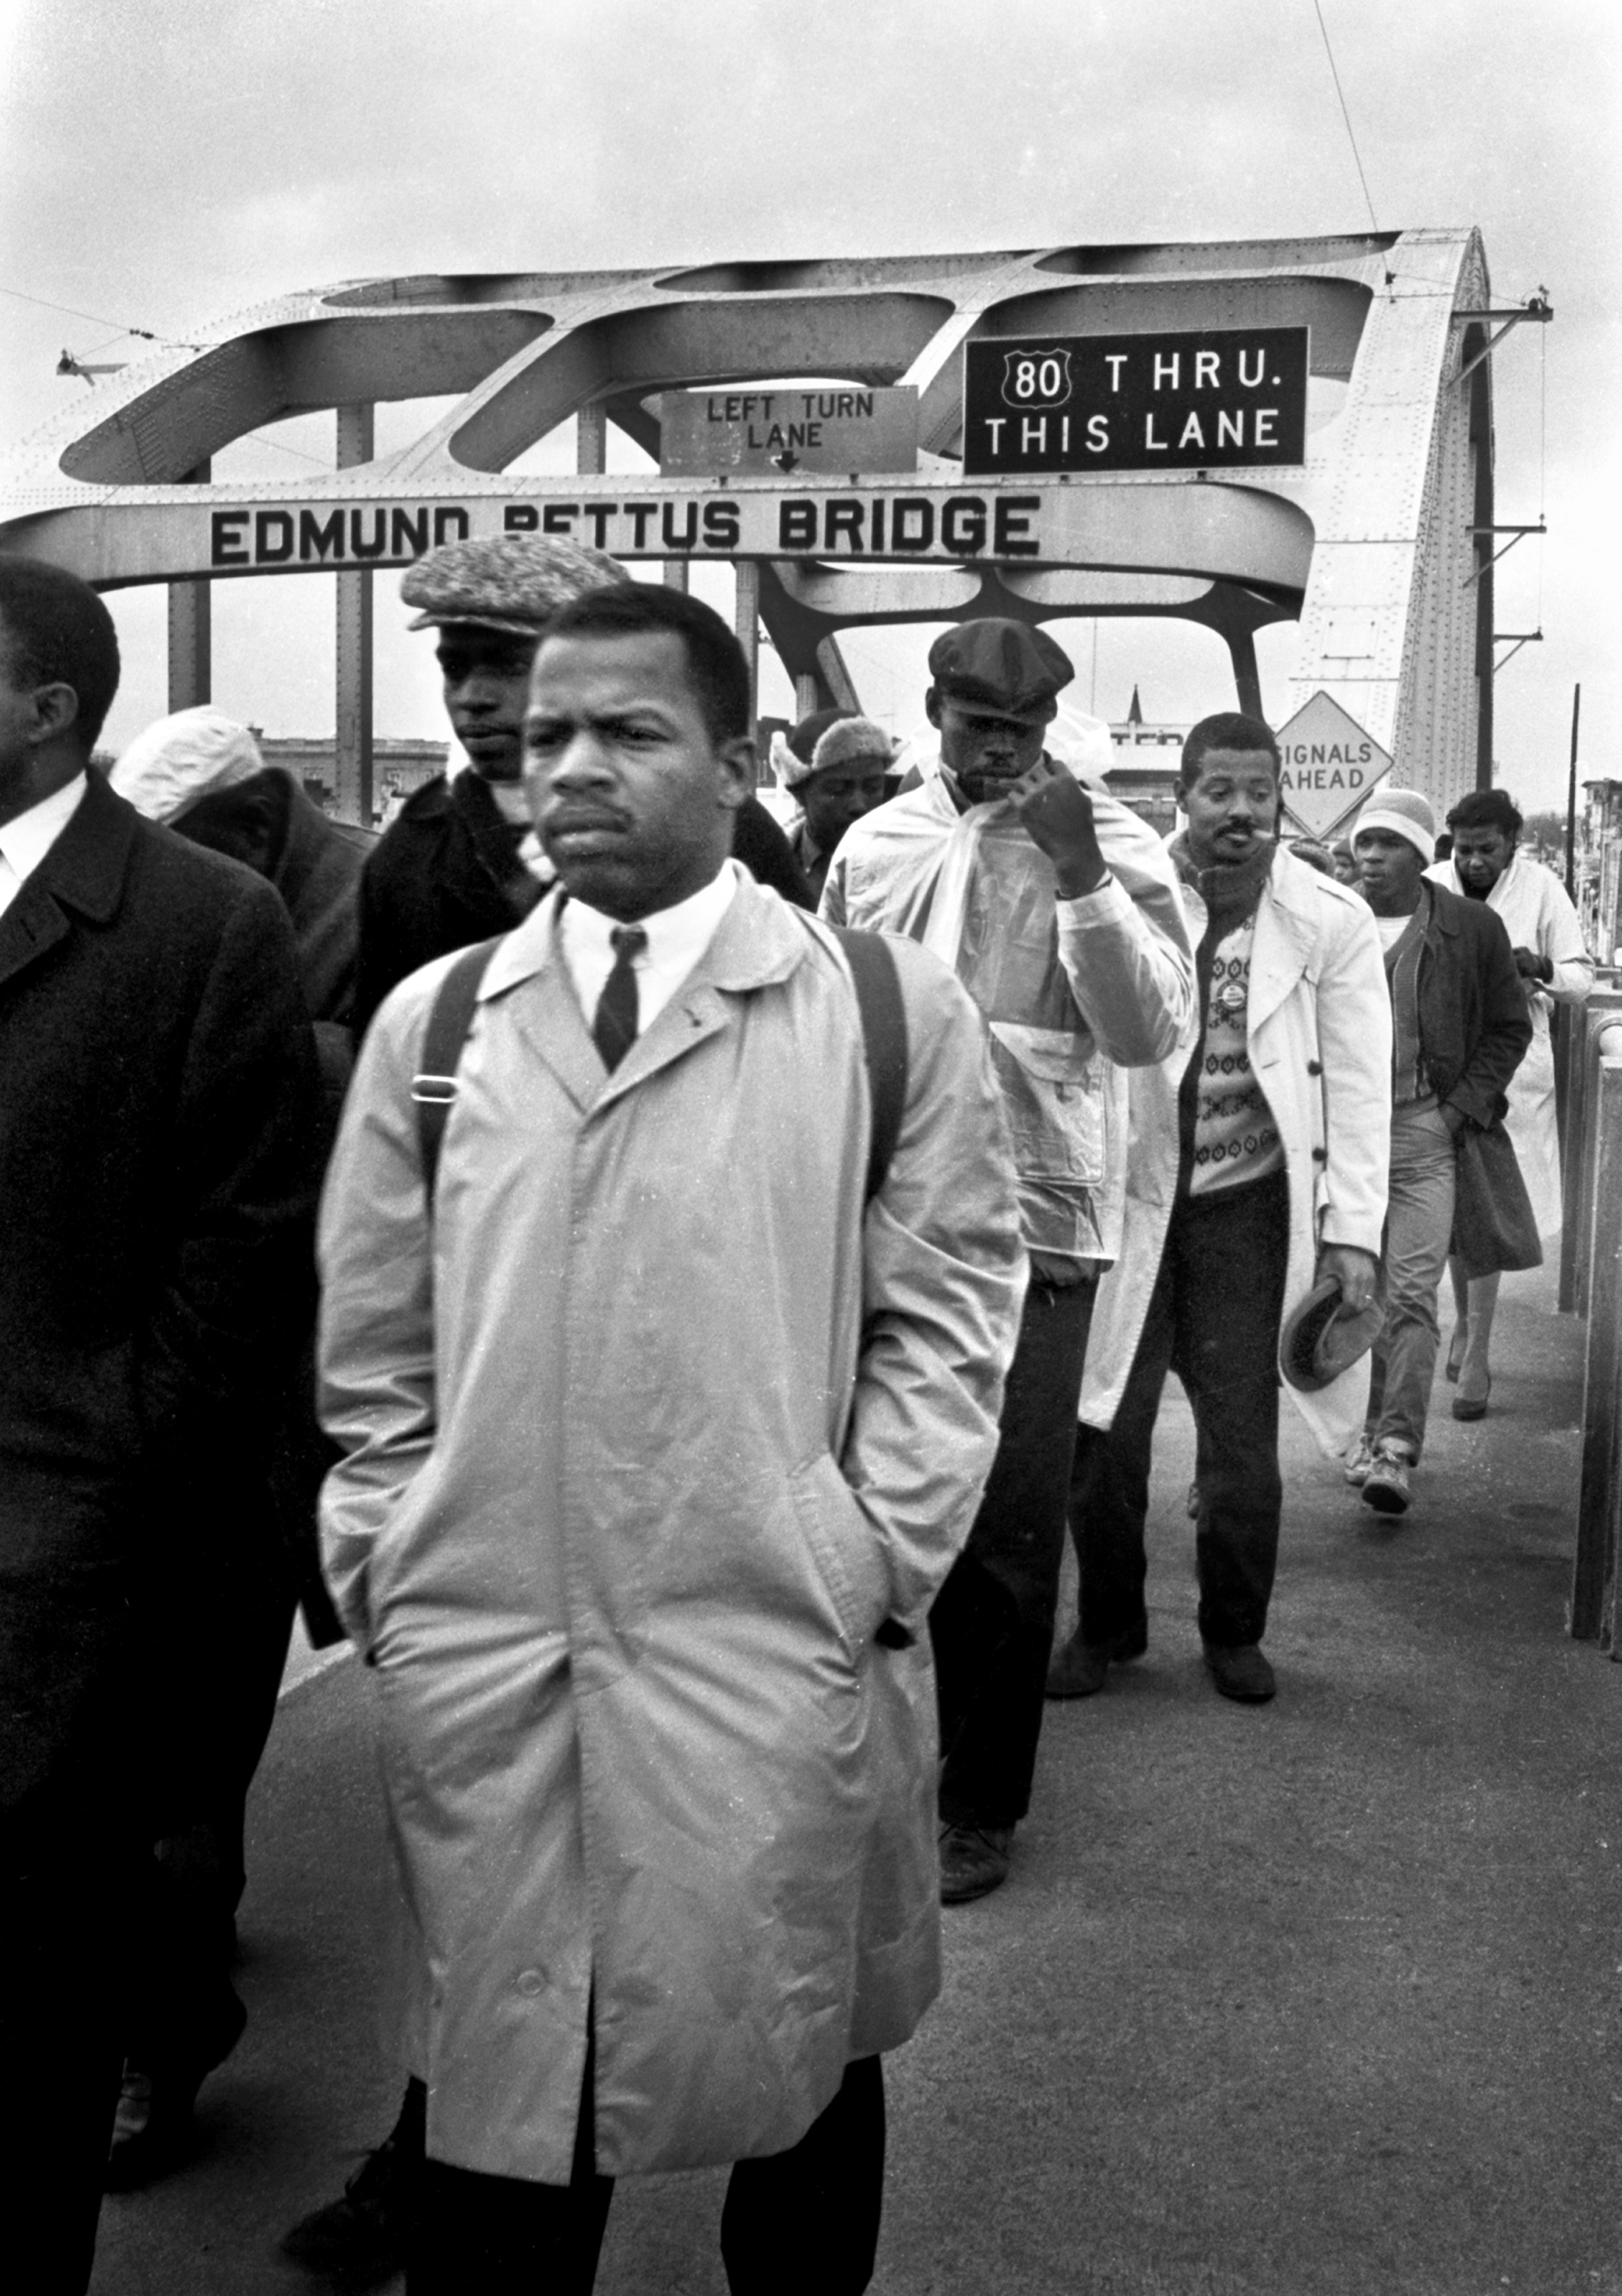 same sex marriage pat brittenden john lewia on edmund pettus bridge in 1965